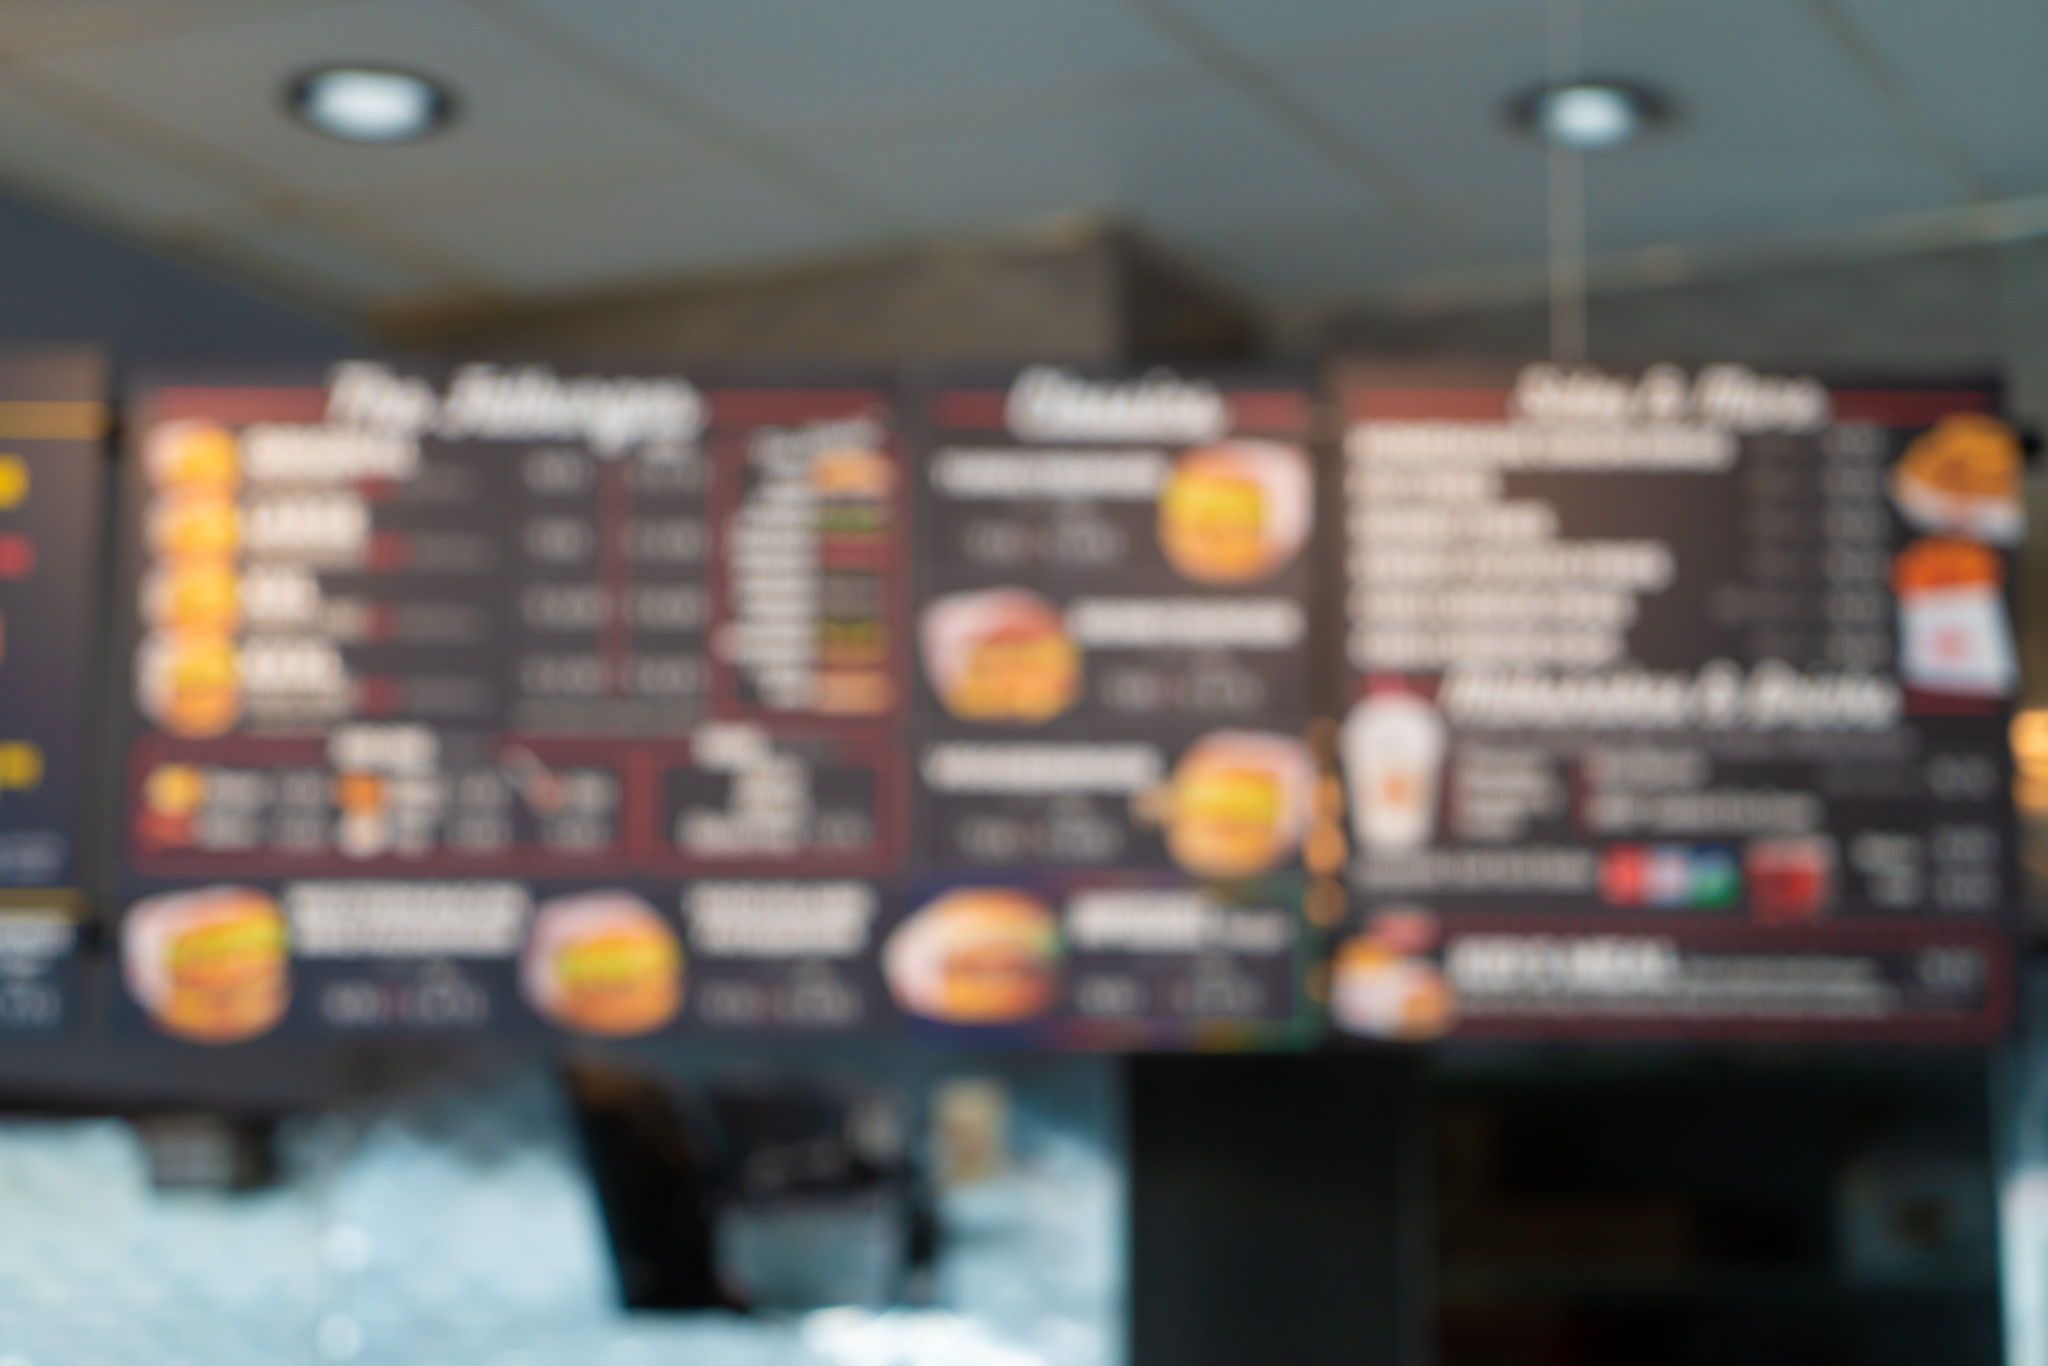 VIEW OUR MENU - Prices and offerings may vary by location.